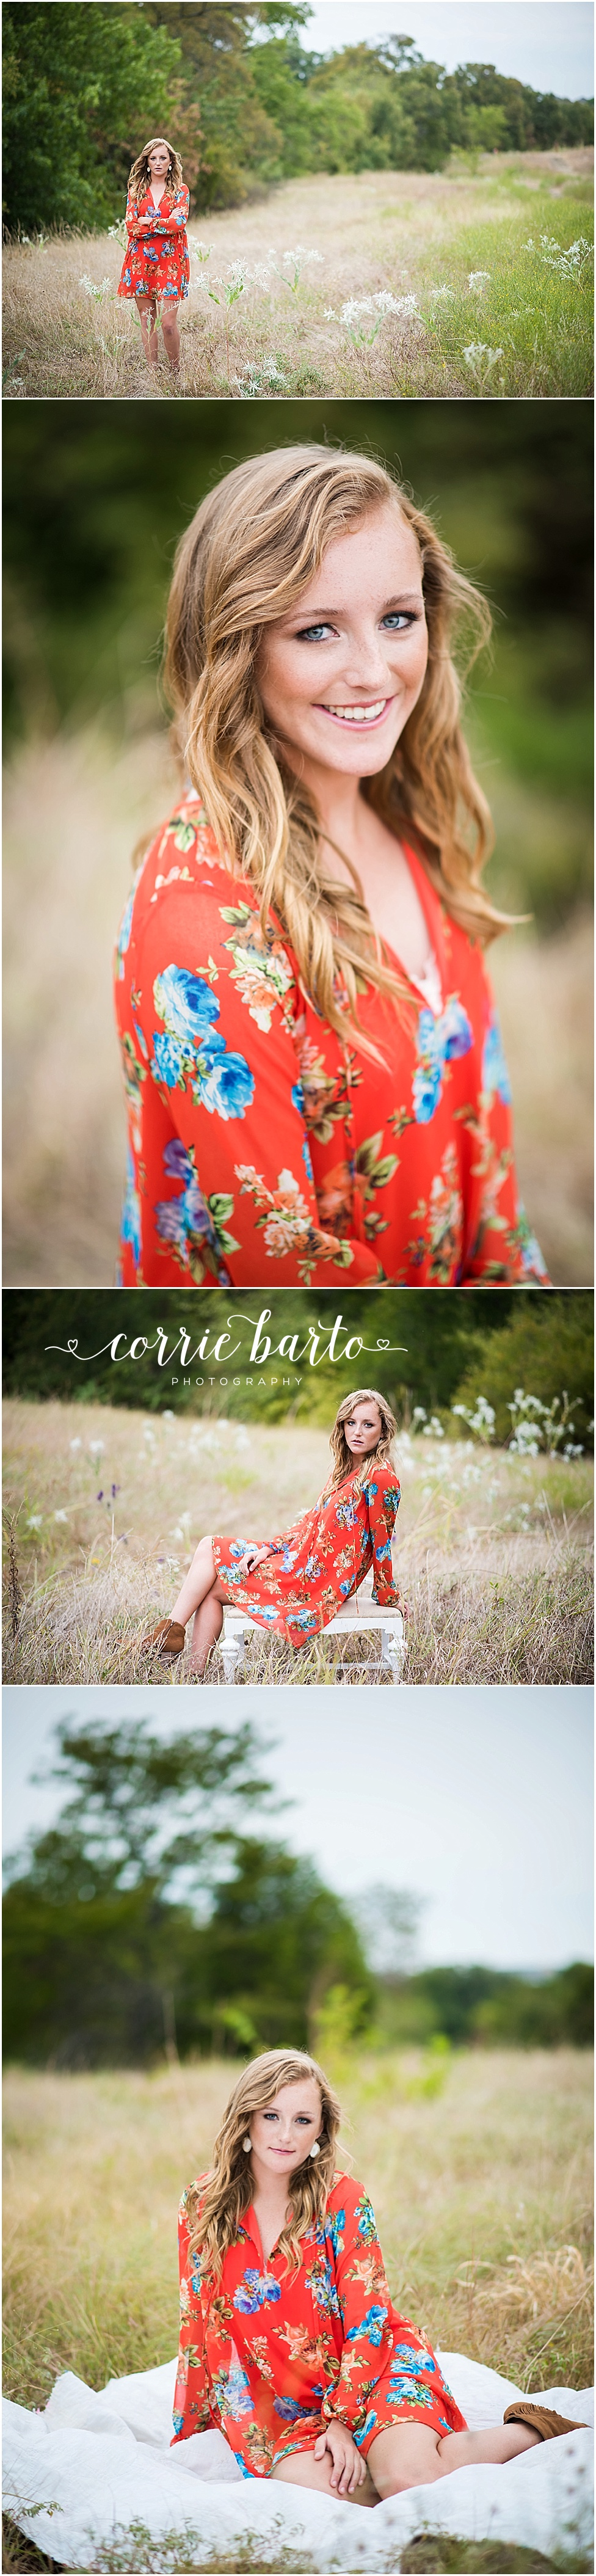 senior pictures-senior girl photos-senior nature shoot-dress ideas for senior photos-senior hairstyles-senior makeup